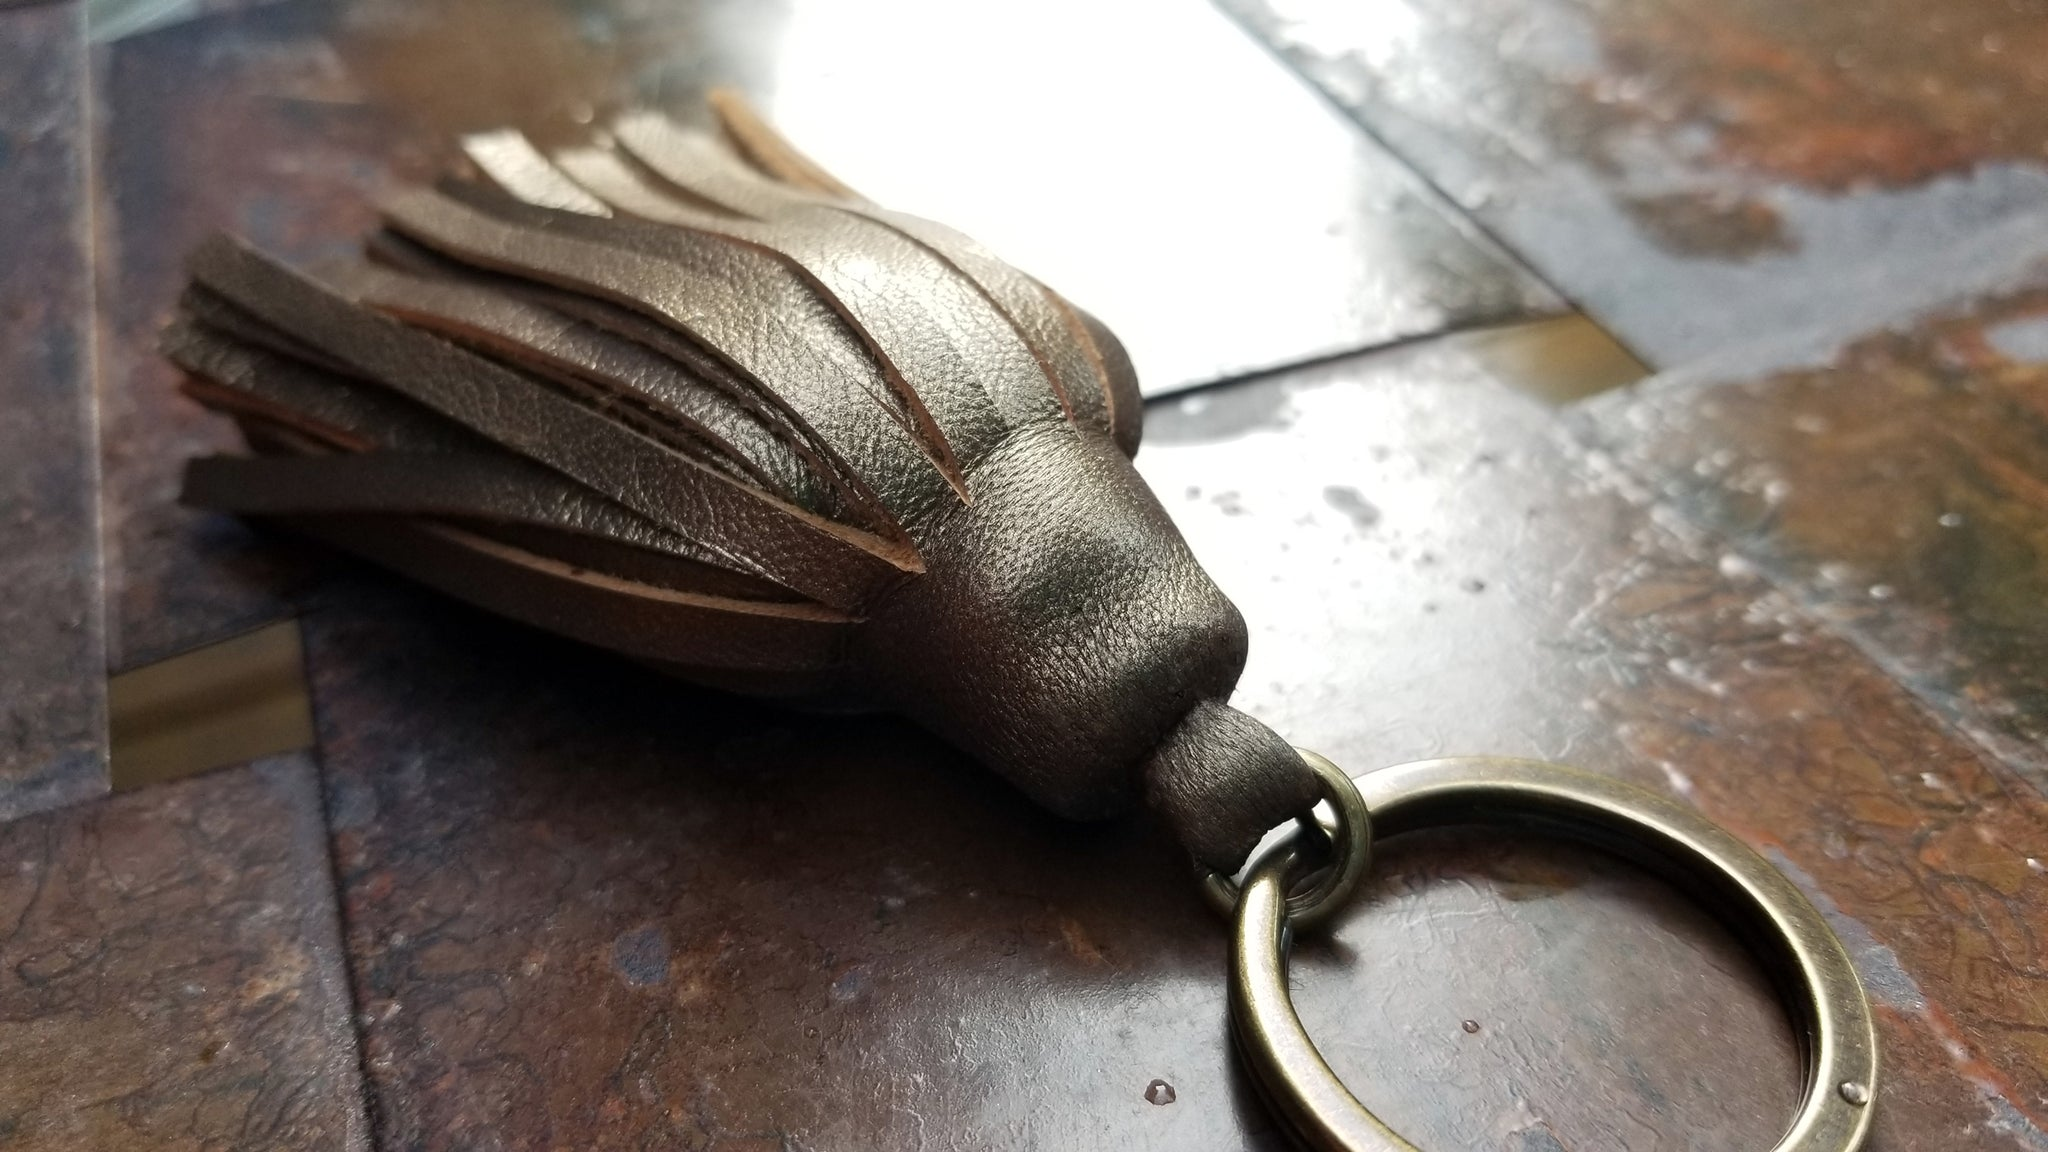 Lulu leather tassel key chain purse pocketbook charm, color; pearlized bronze